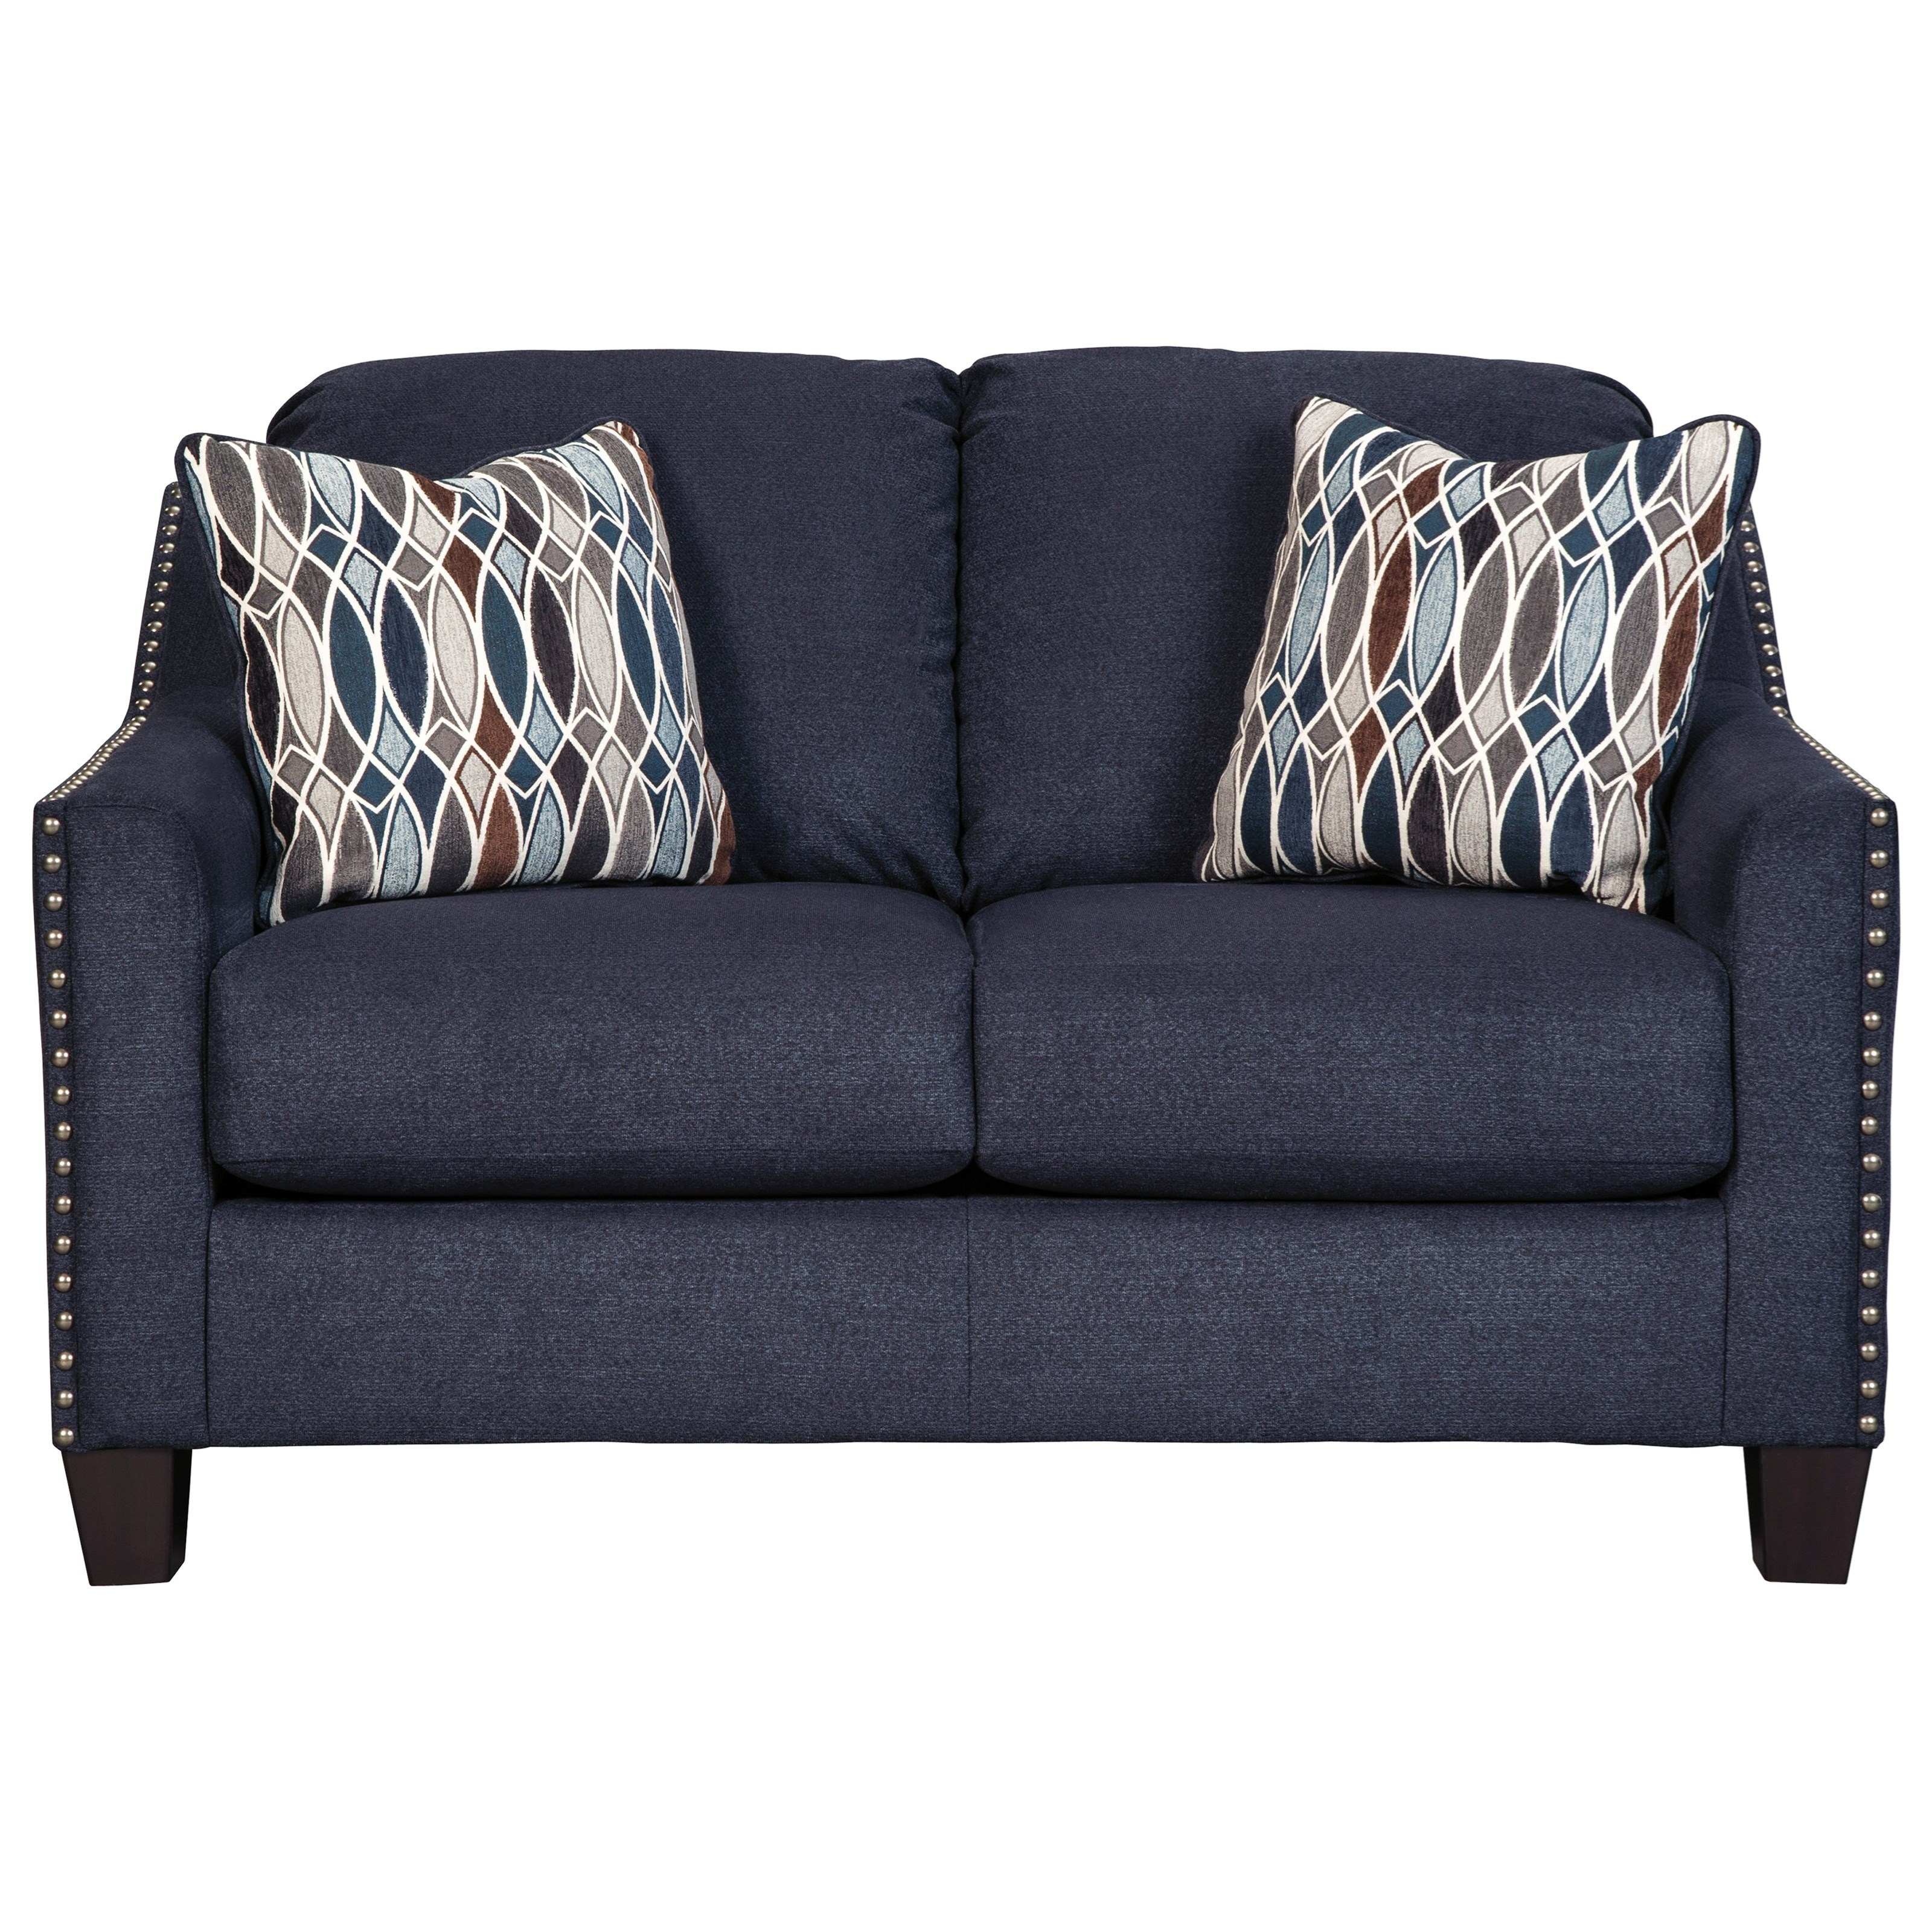 Creeal Heights Loveseat by Benchcraft at Walker's Furniture